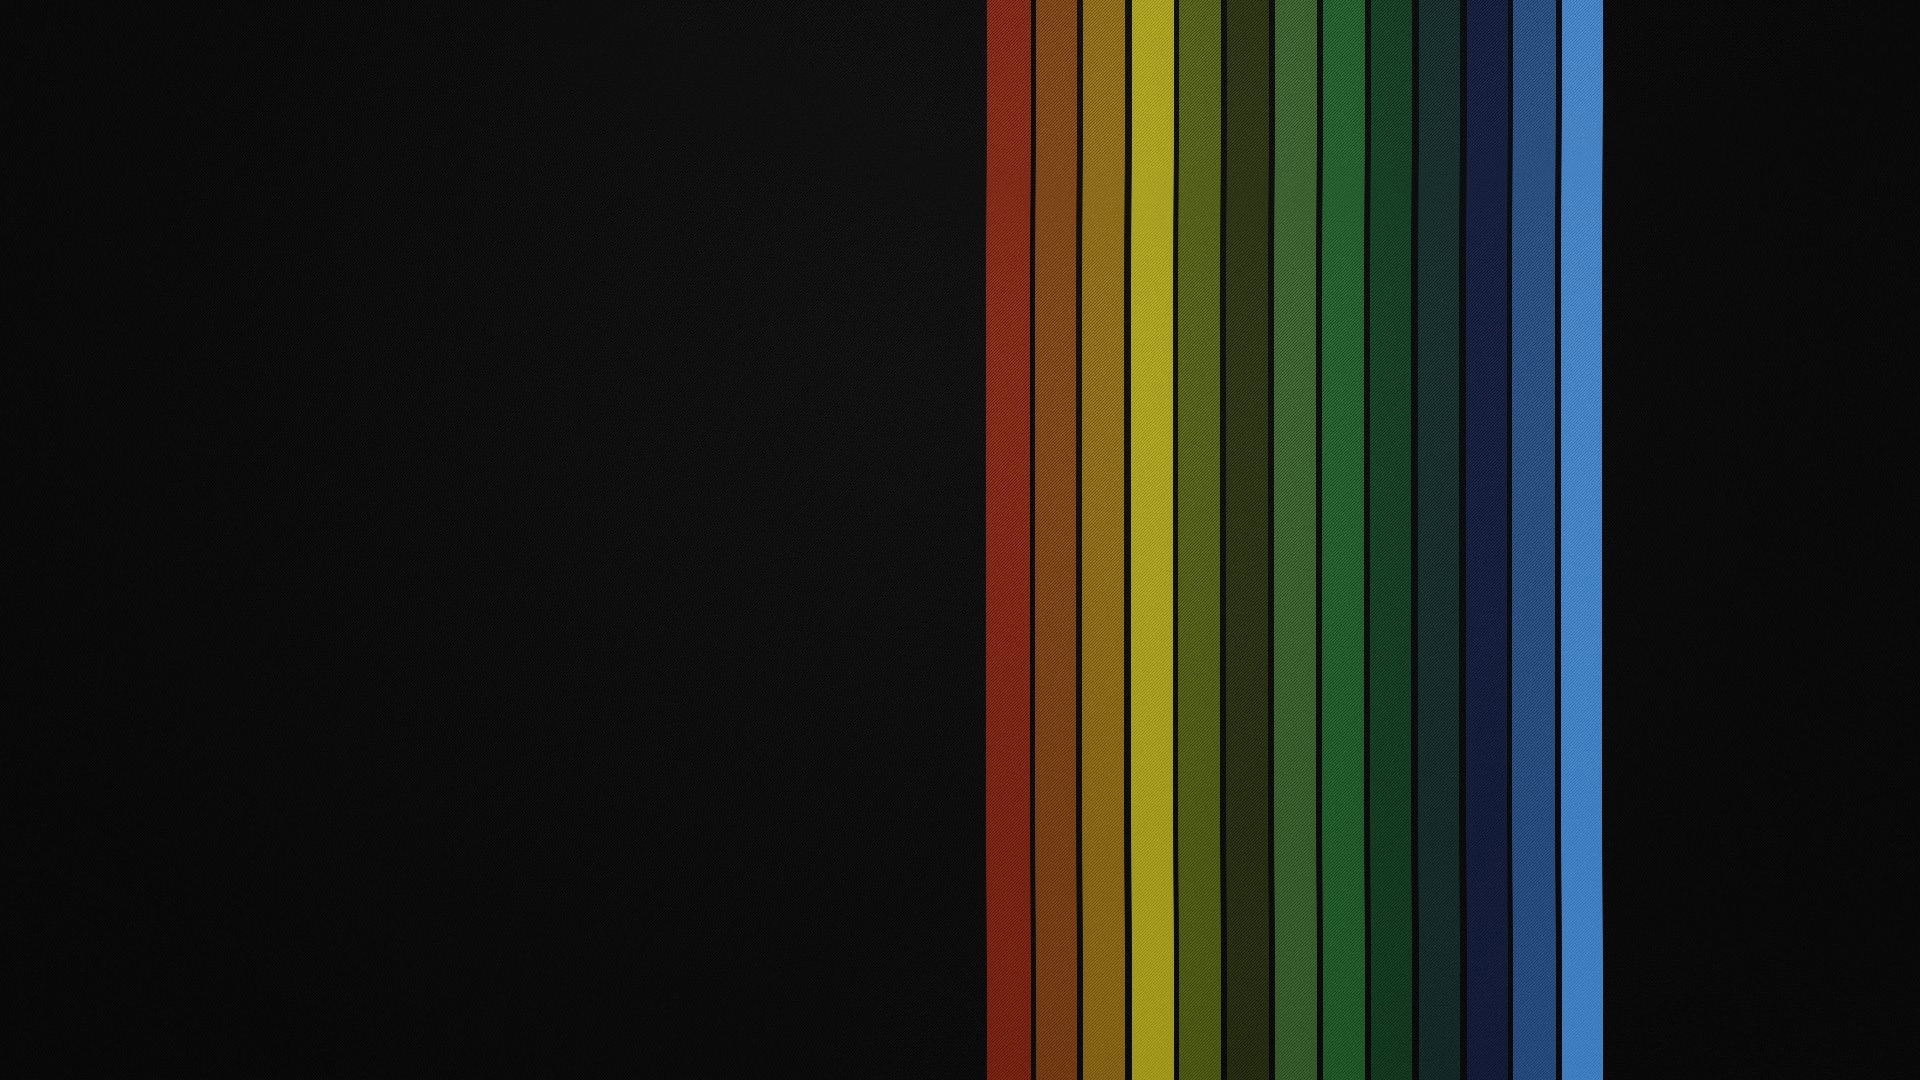 simple wallpapers 27250 1920x1080 px